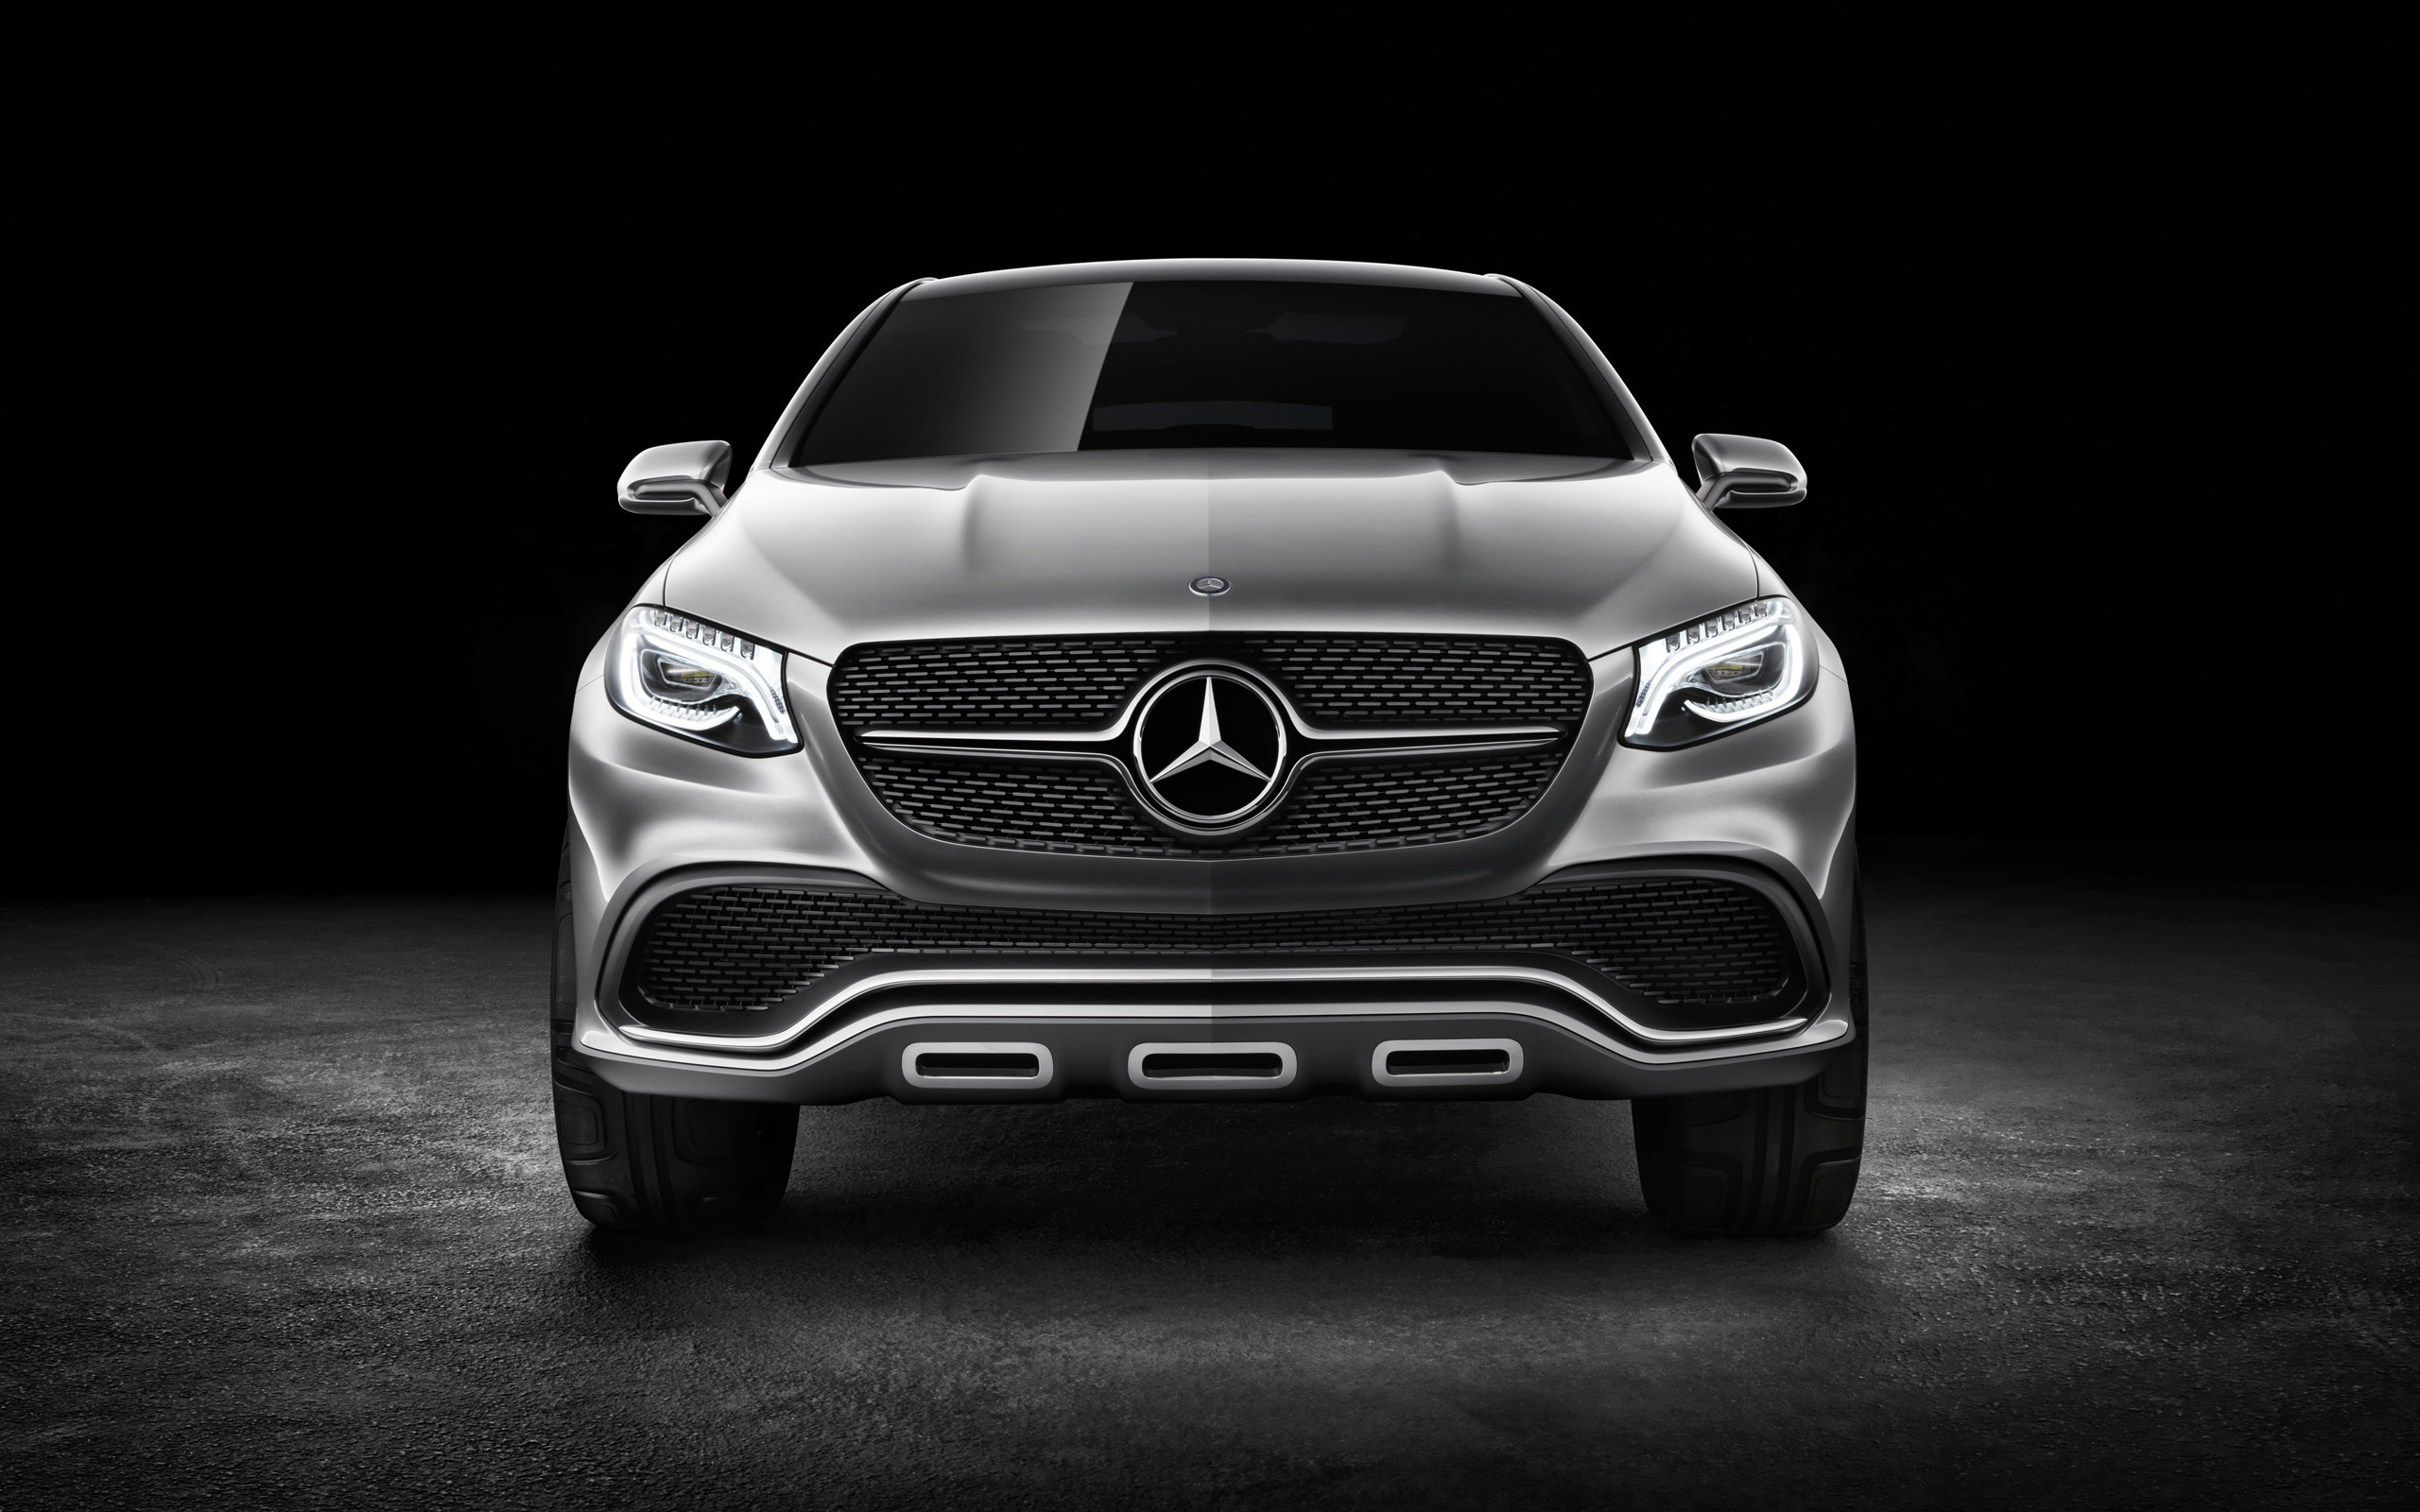 2014 Mercedes Benz Concept Coupe Suv 8 Wallpaper Hd Car Wallpapers Id 4468